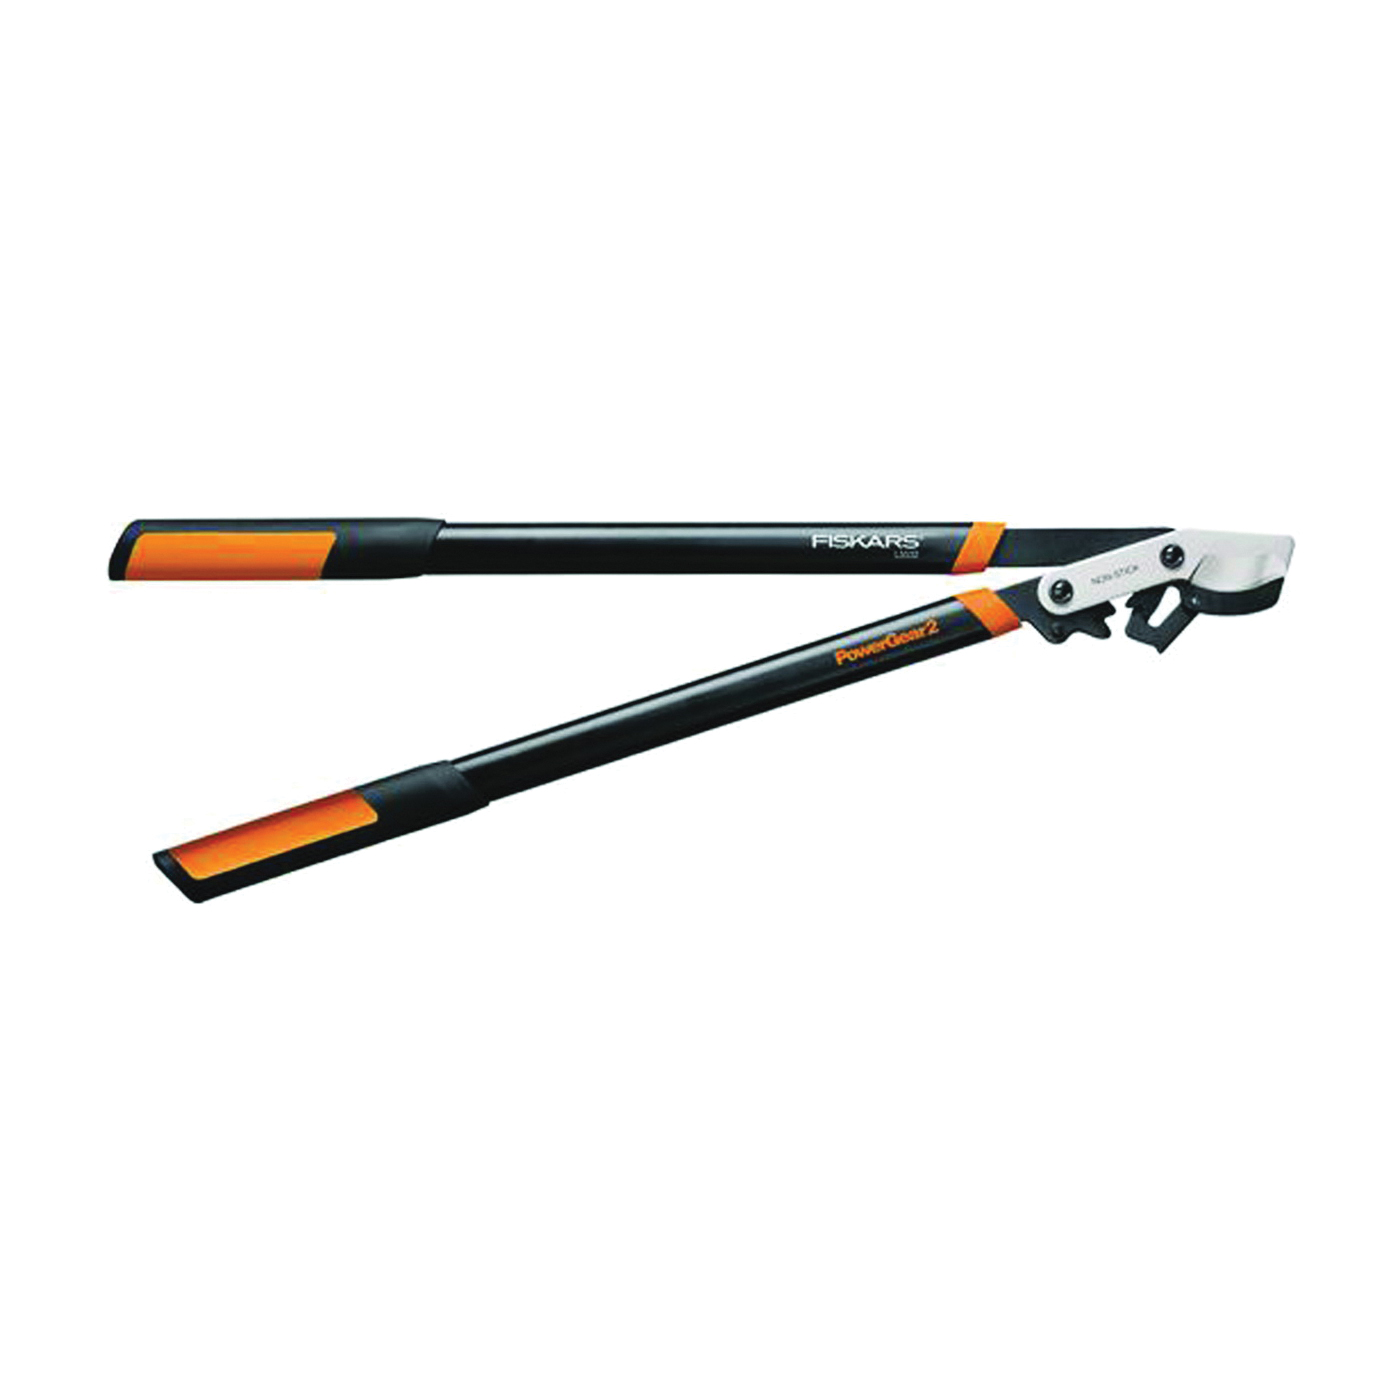 Picture of FISKARS 394801-1001 Power Gear Lopper, 2 in Cutting Capacity, Bypass Blade, Steel Blade, Steel Handle, Round Handle